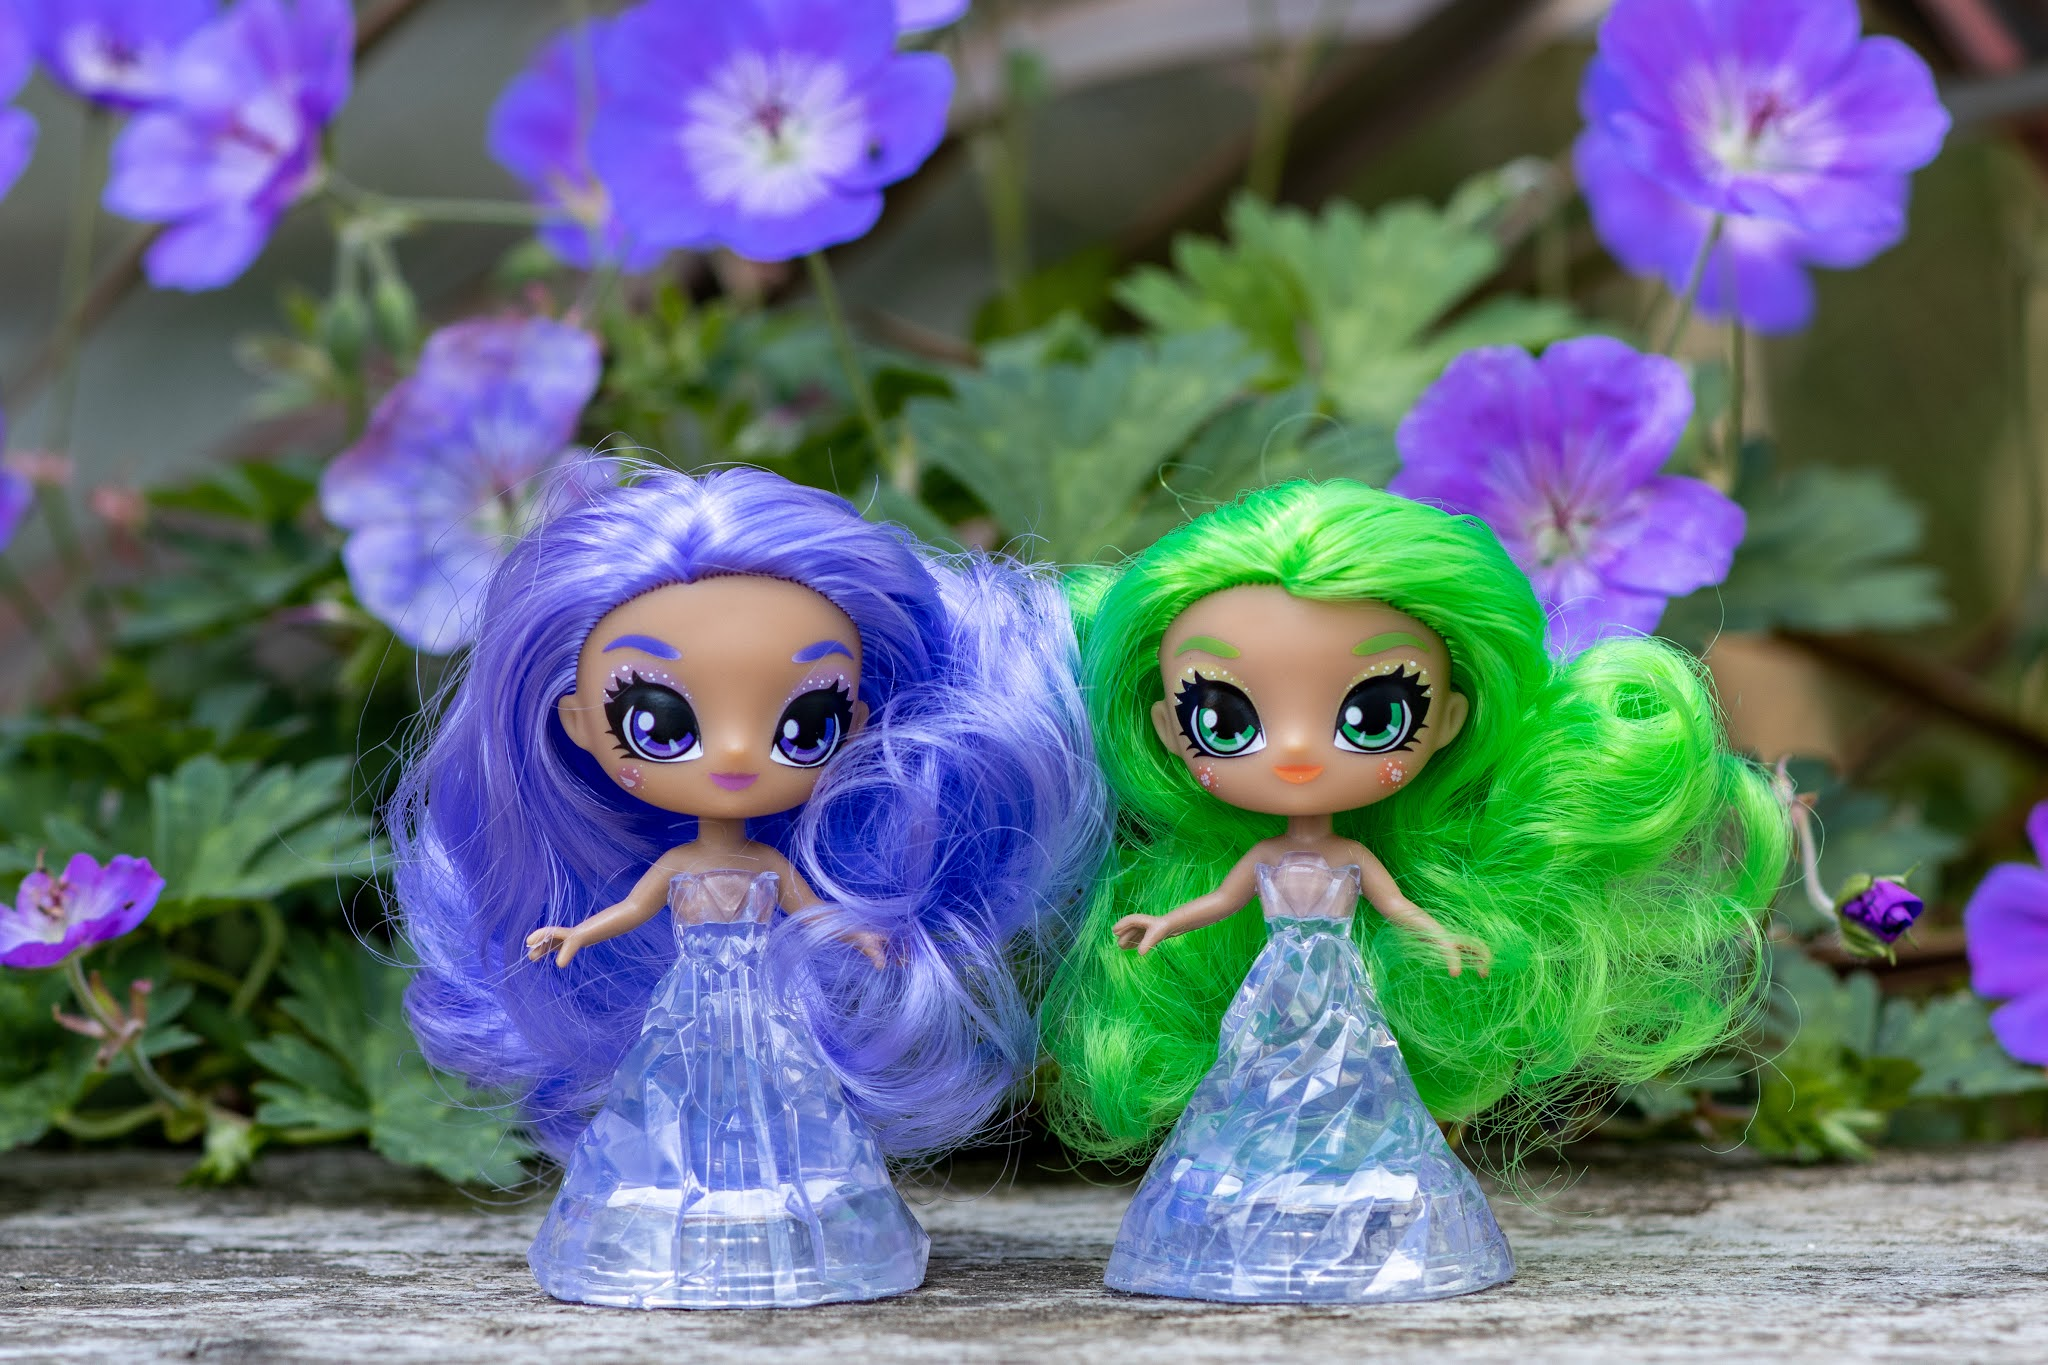 Purple haired amethyst and green haired adventurine crystalina sprite dolls next to each other